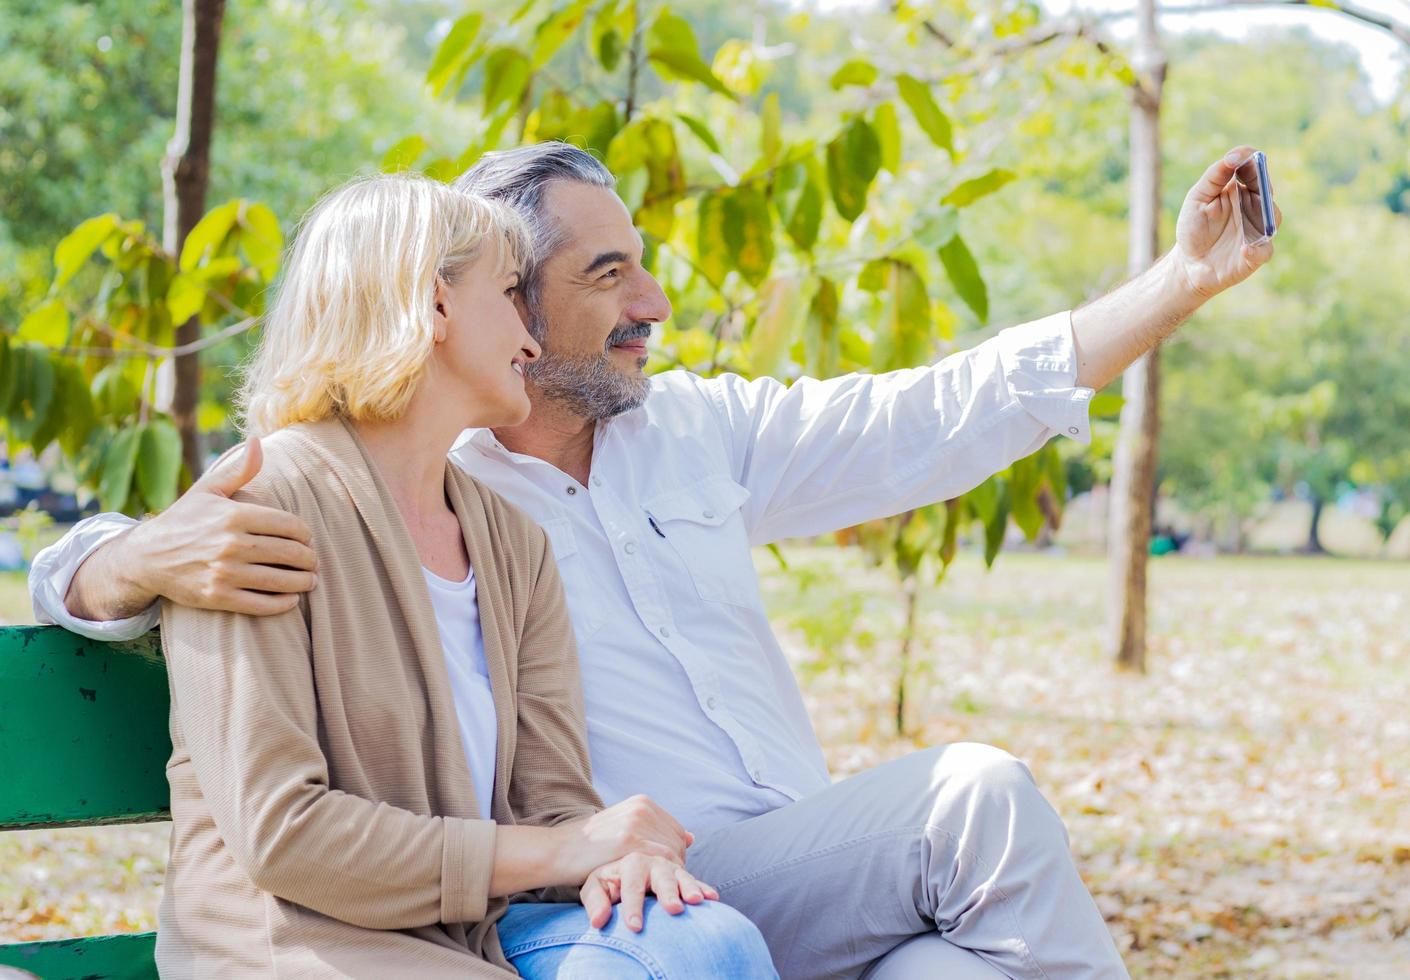 Couple taking selfie in a park photo